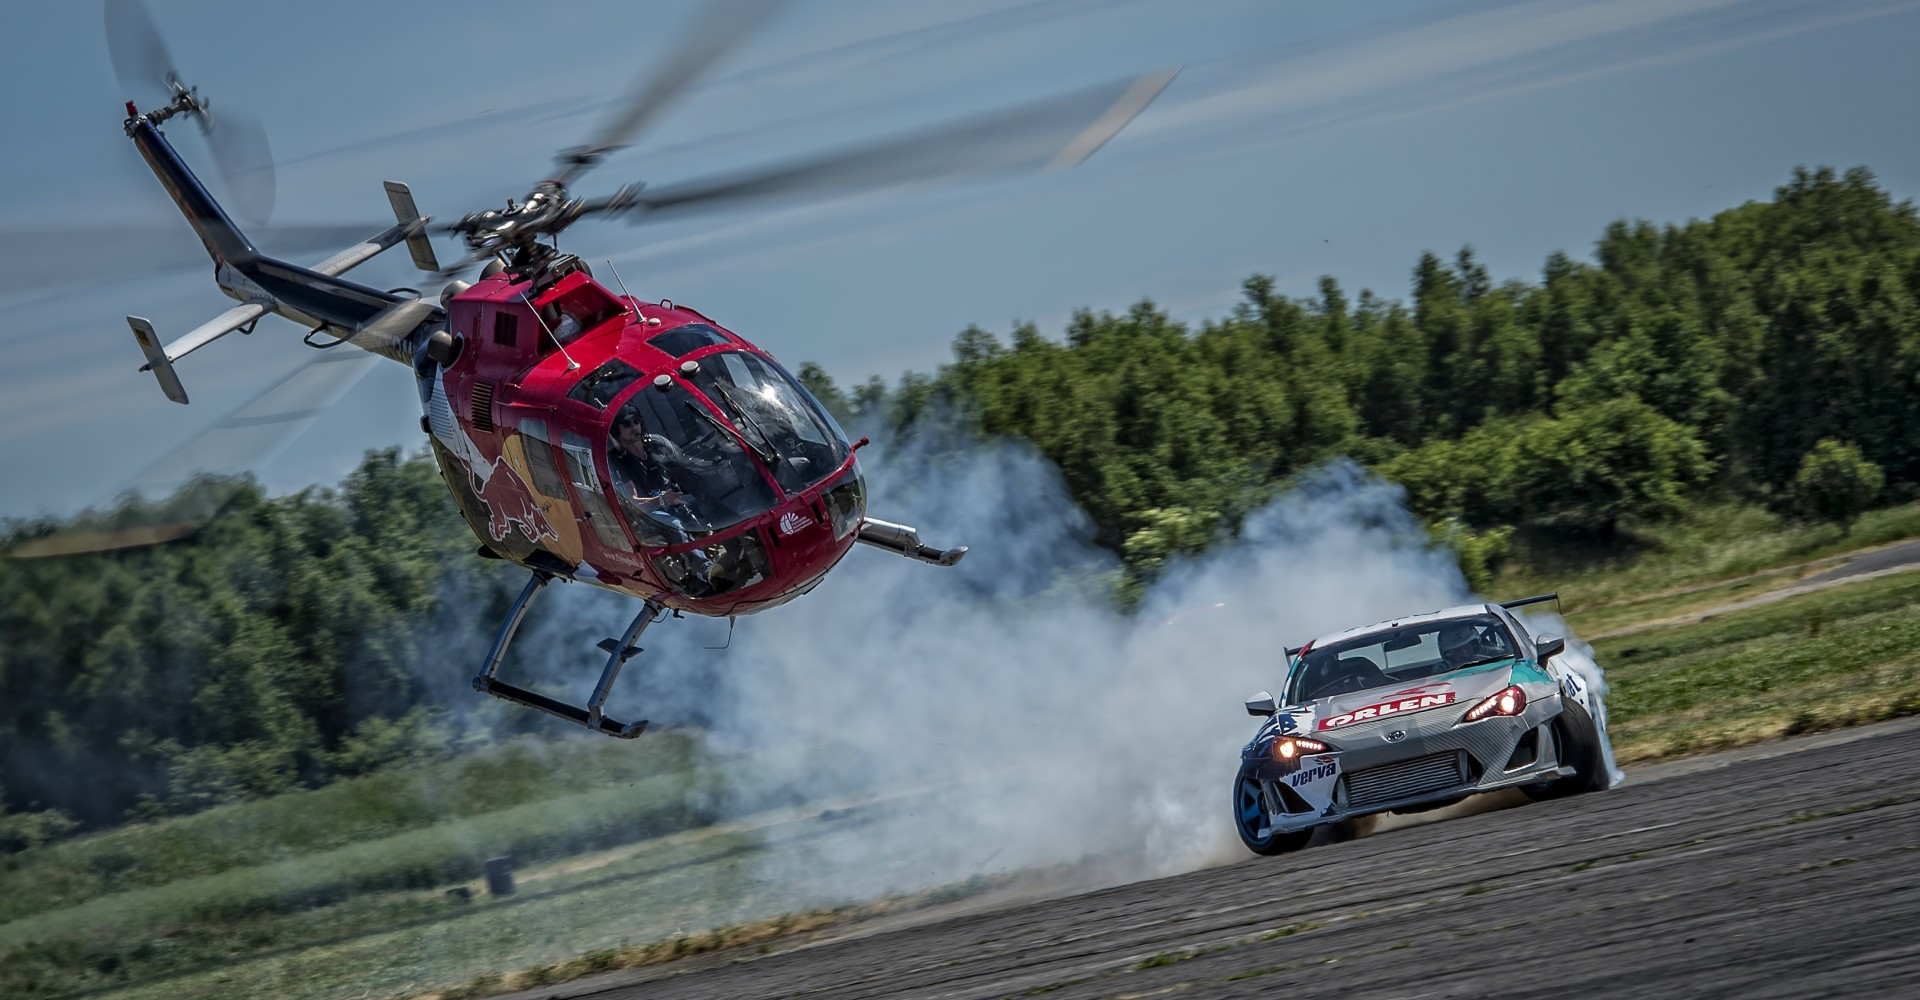 Helicopter Chasing Drift Car Is All Kinds Of Awesome